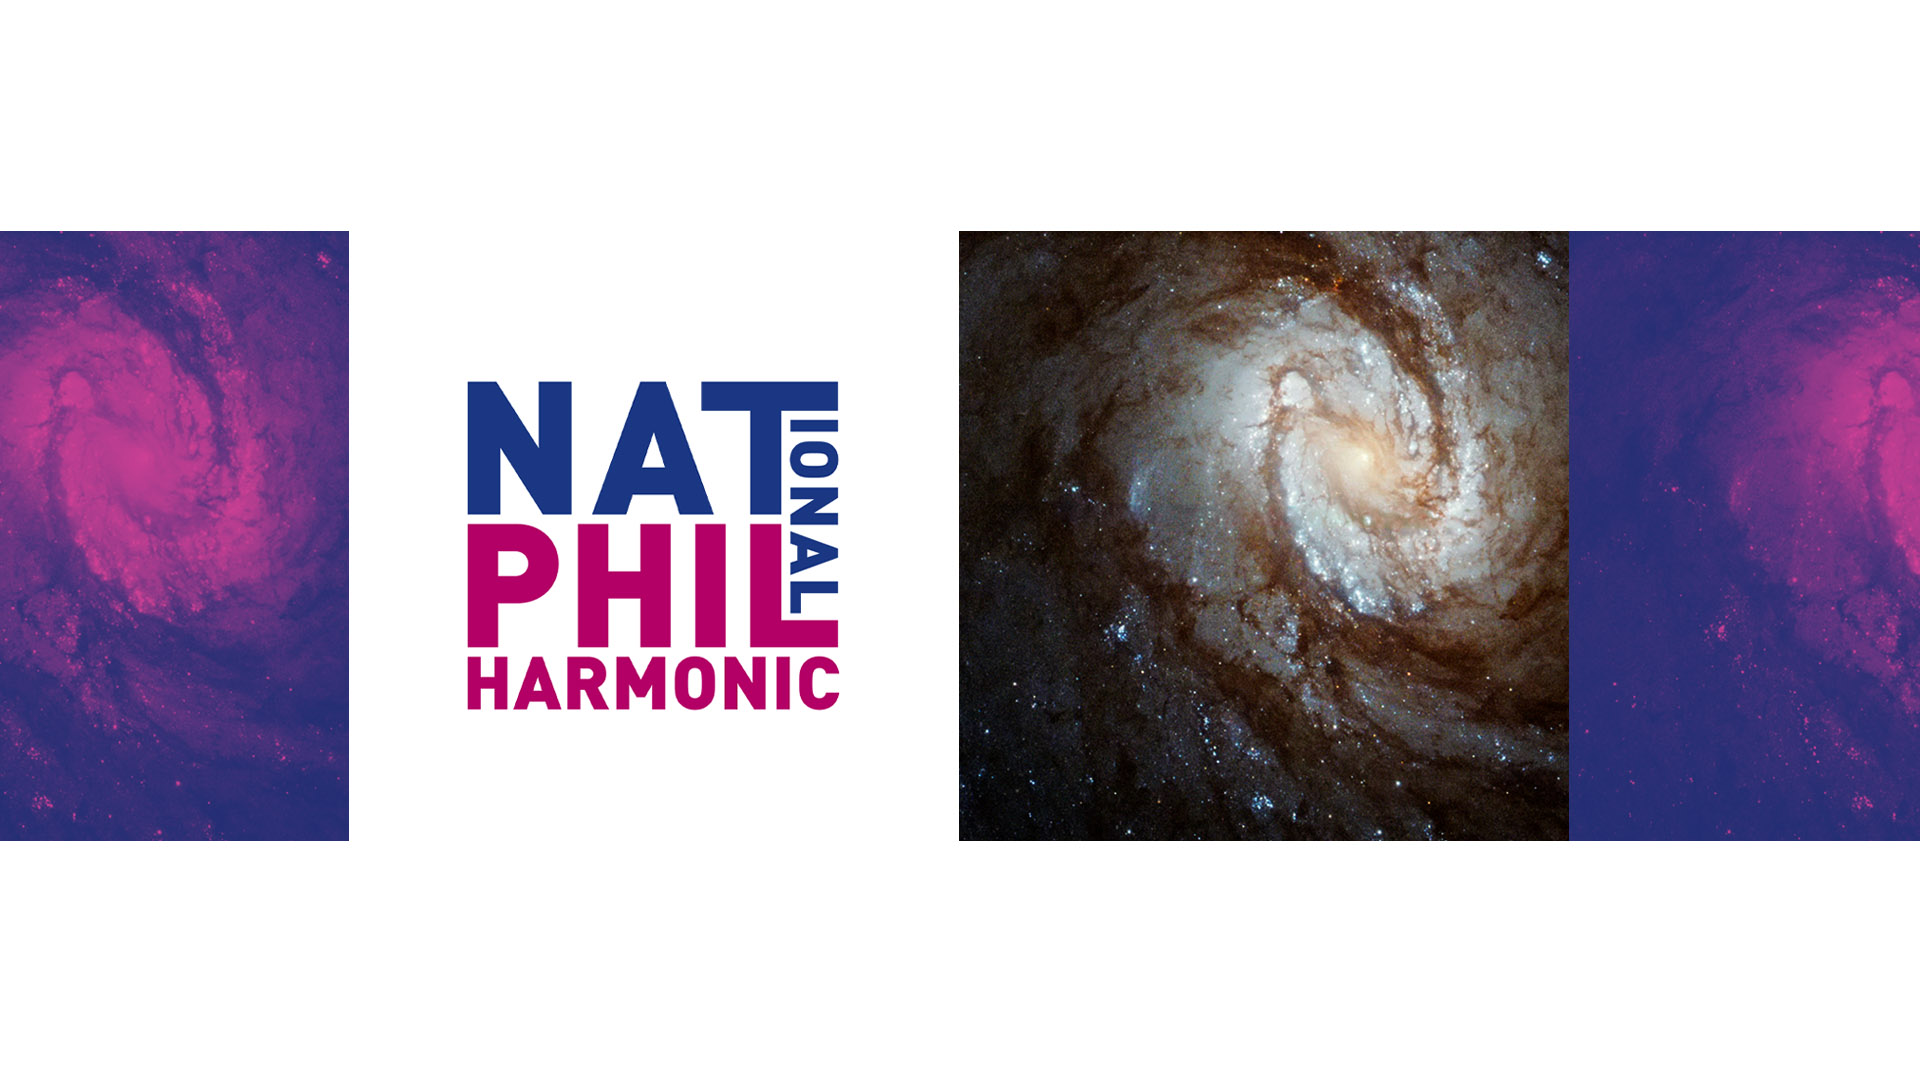 National Philharmonic, National, Philharmonic, capital one hall, capital one center, things to do in DC, Tysons, classical, orchestra, Holst, NASA, Planets